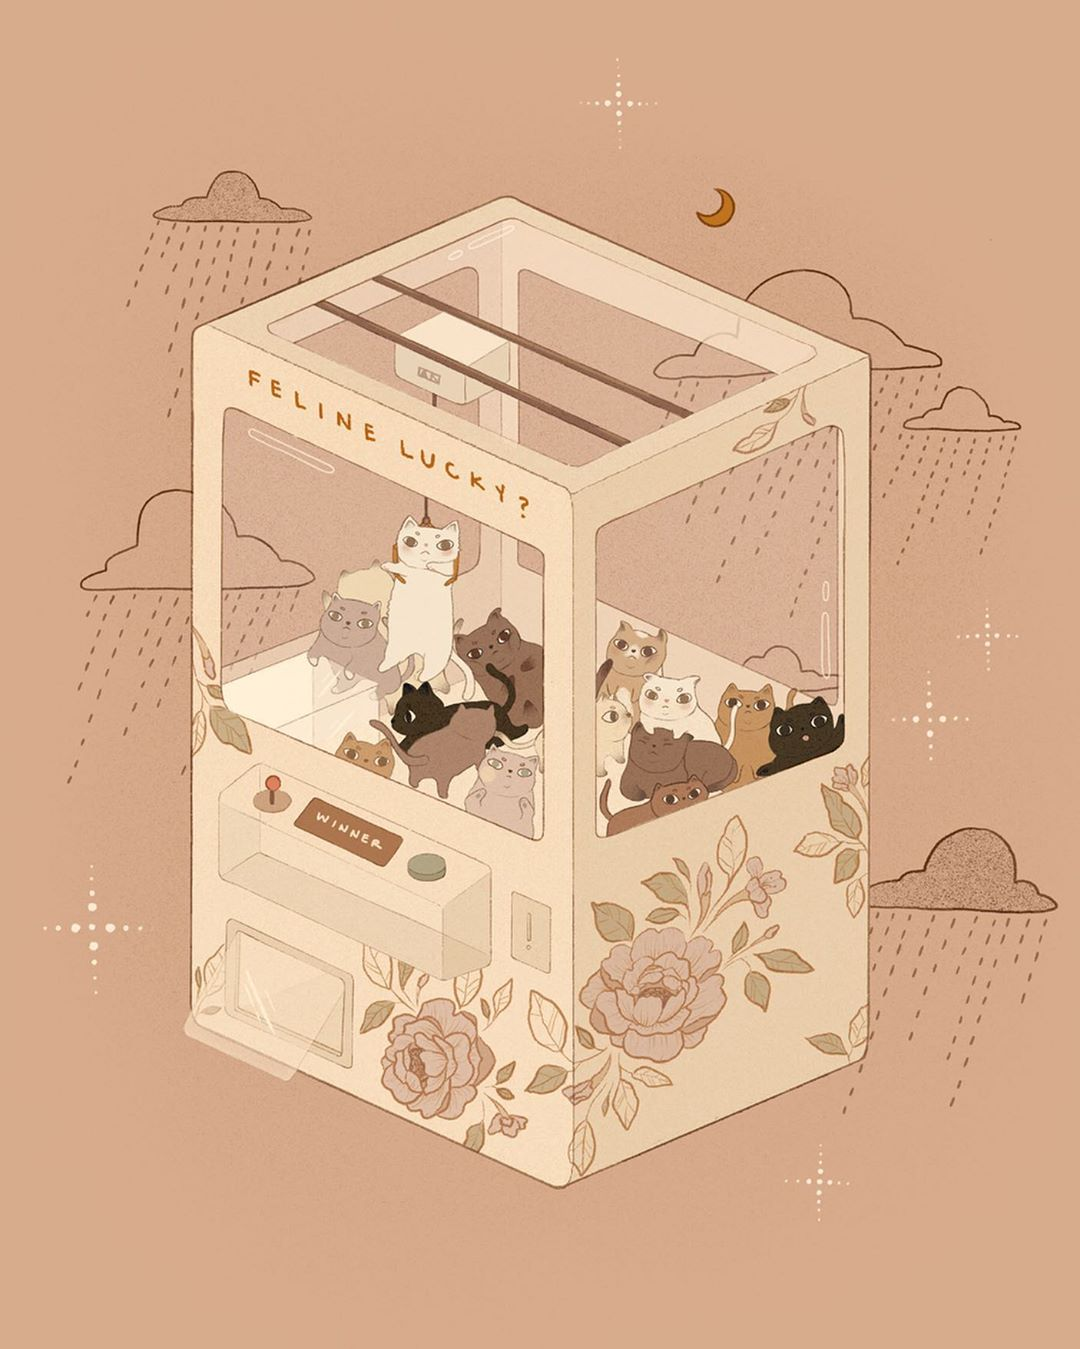 Cat illustration by Angie Nguyen